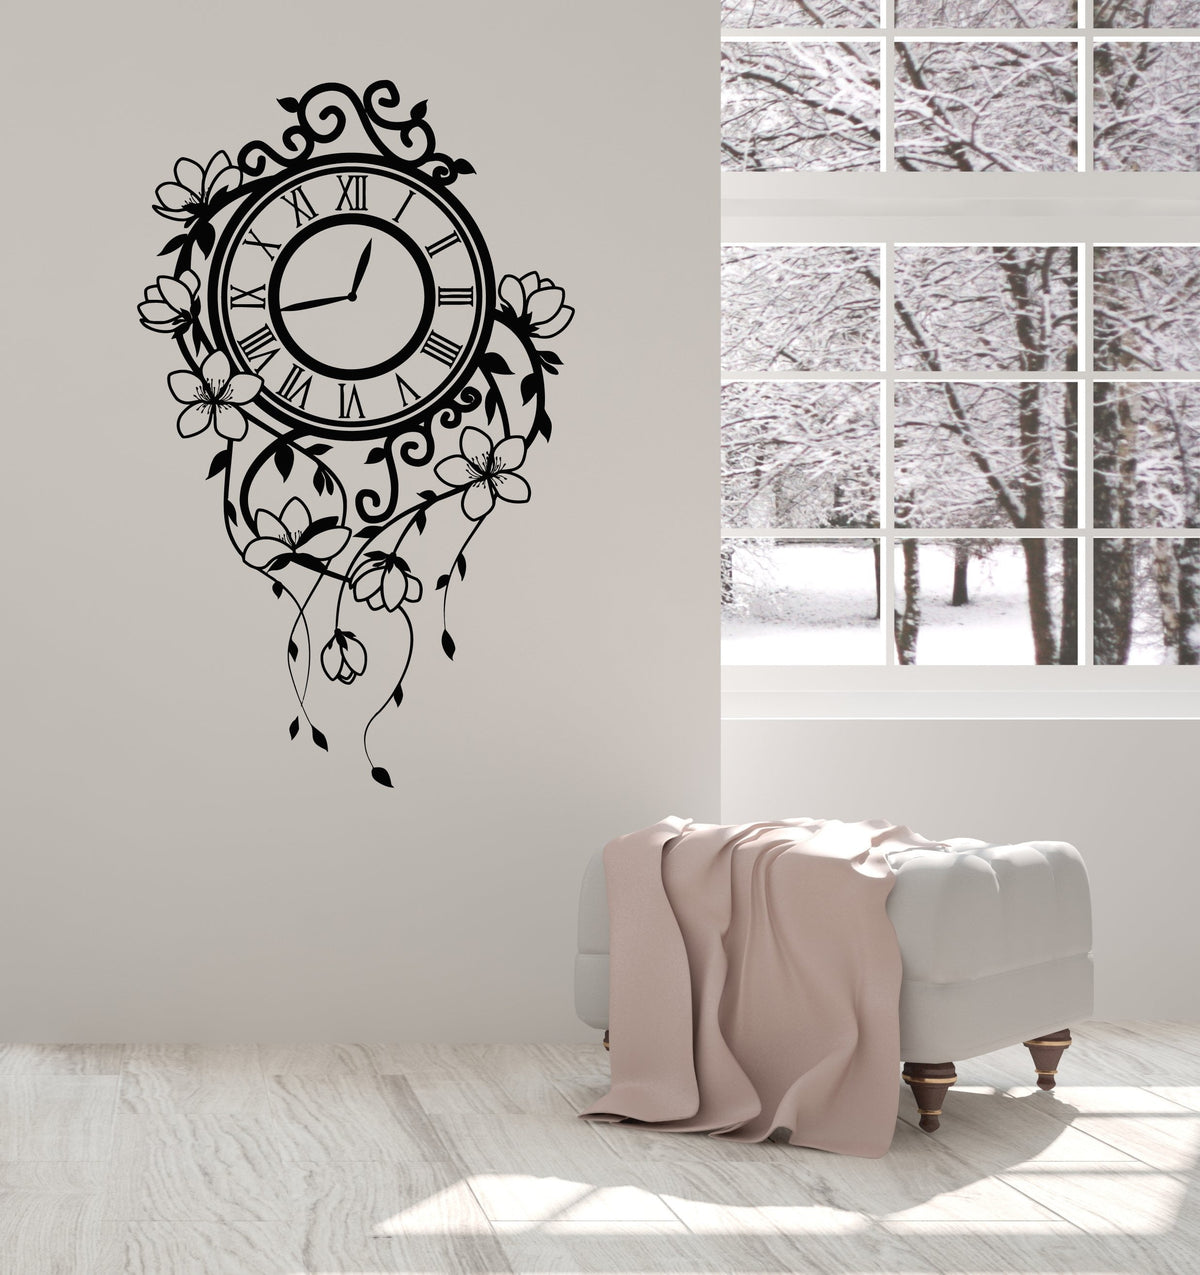 Vinyl Wall Decal Floral Clock Beautiful Home Room Decorating Art Stick Wallstickers4you